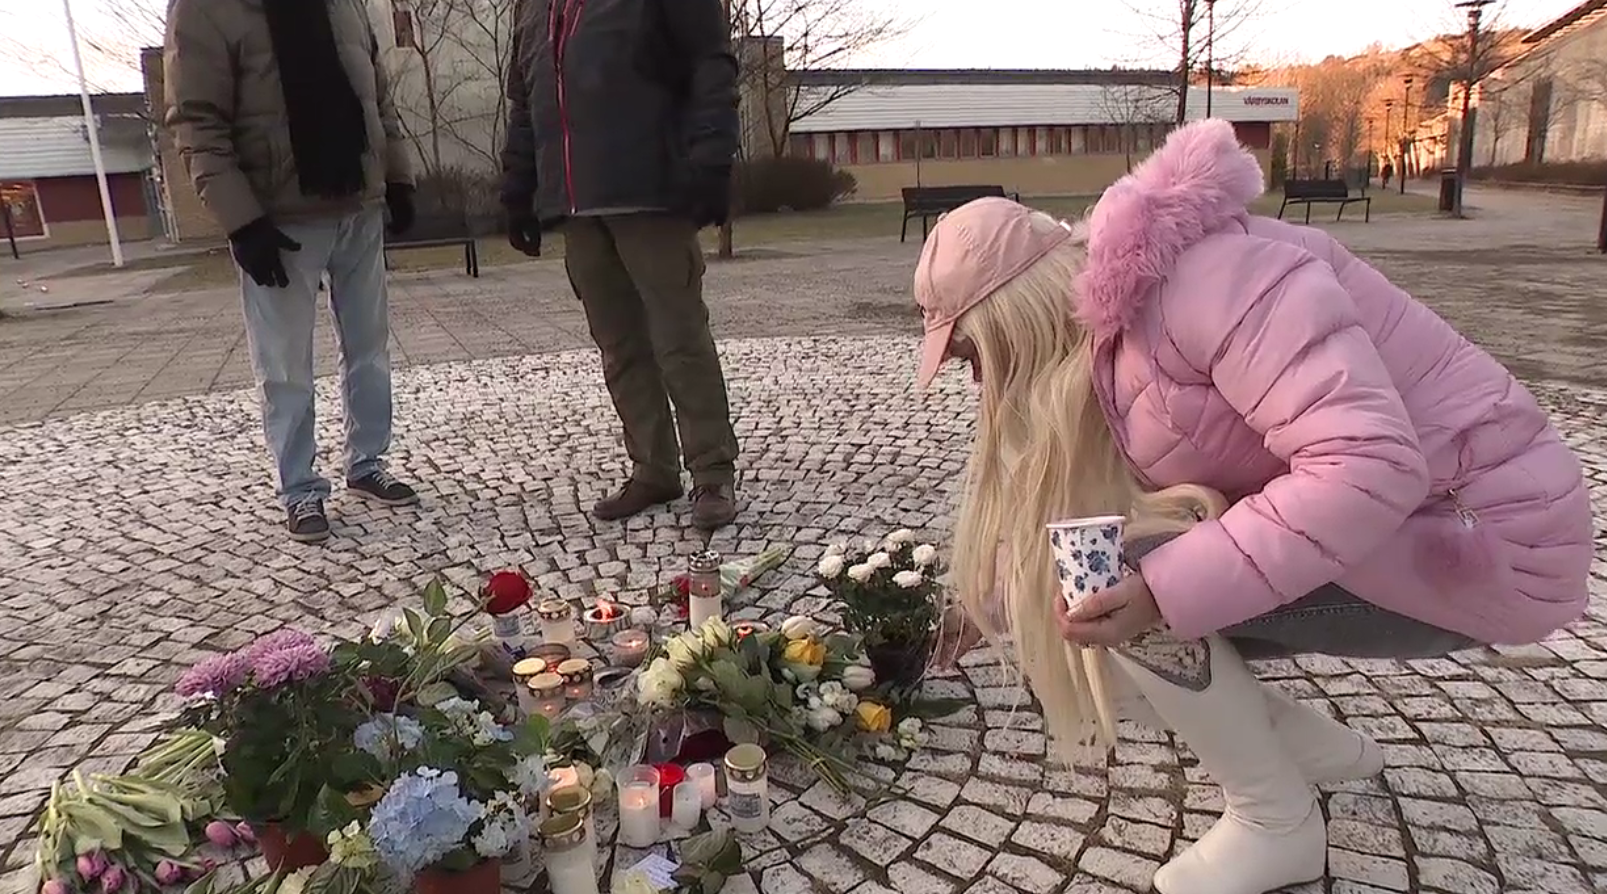 In a residential neighborhood, a man was killed on a Sunday morning after picking up an explosive device that sat outside a train station in Vårby gård. A memorial stood in his honor Monday. (Sinclair Broadcast Group)<p></p>